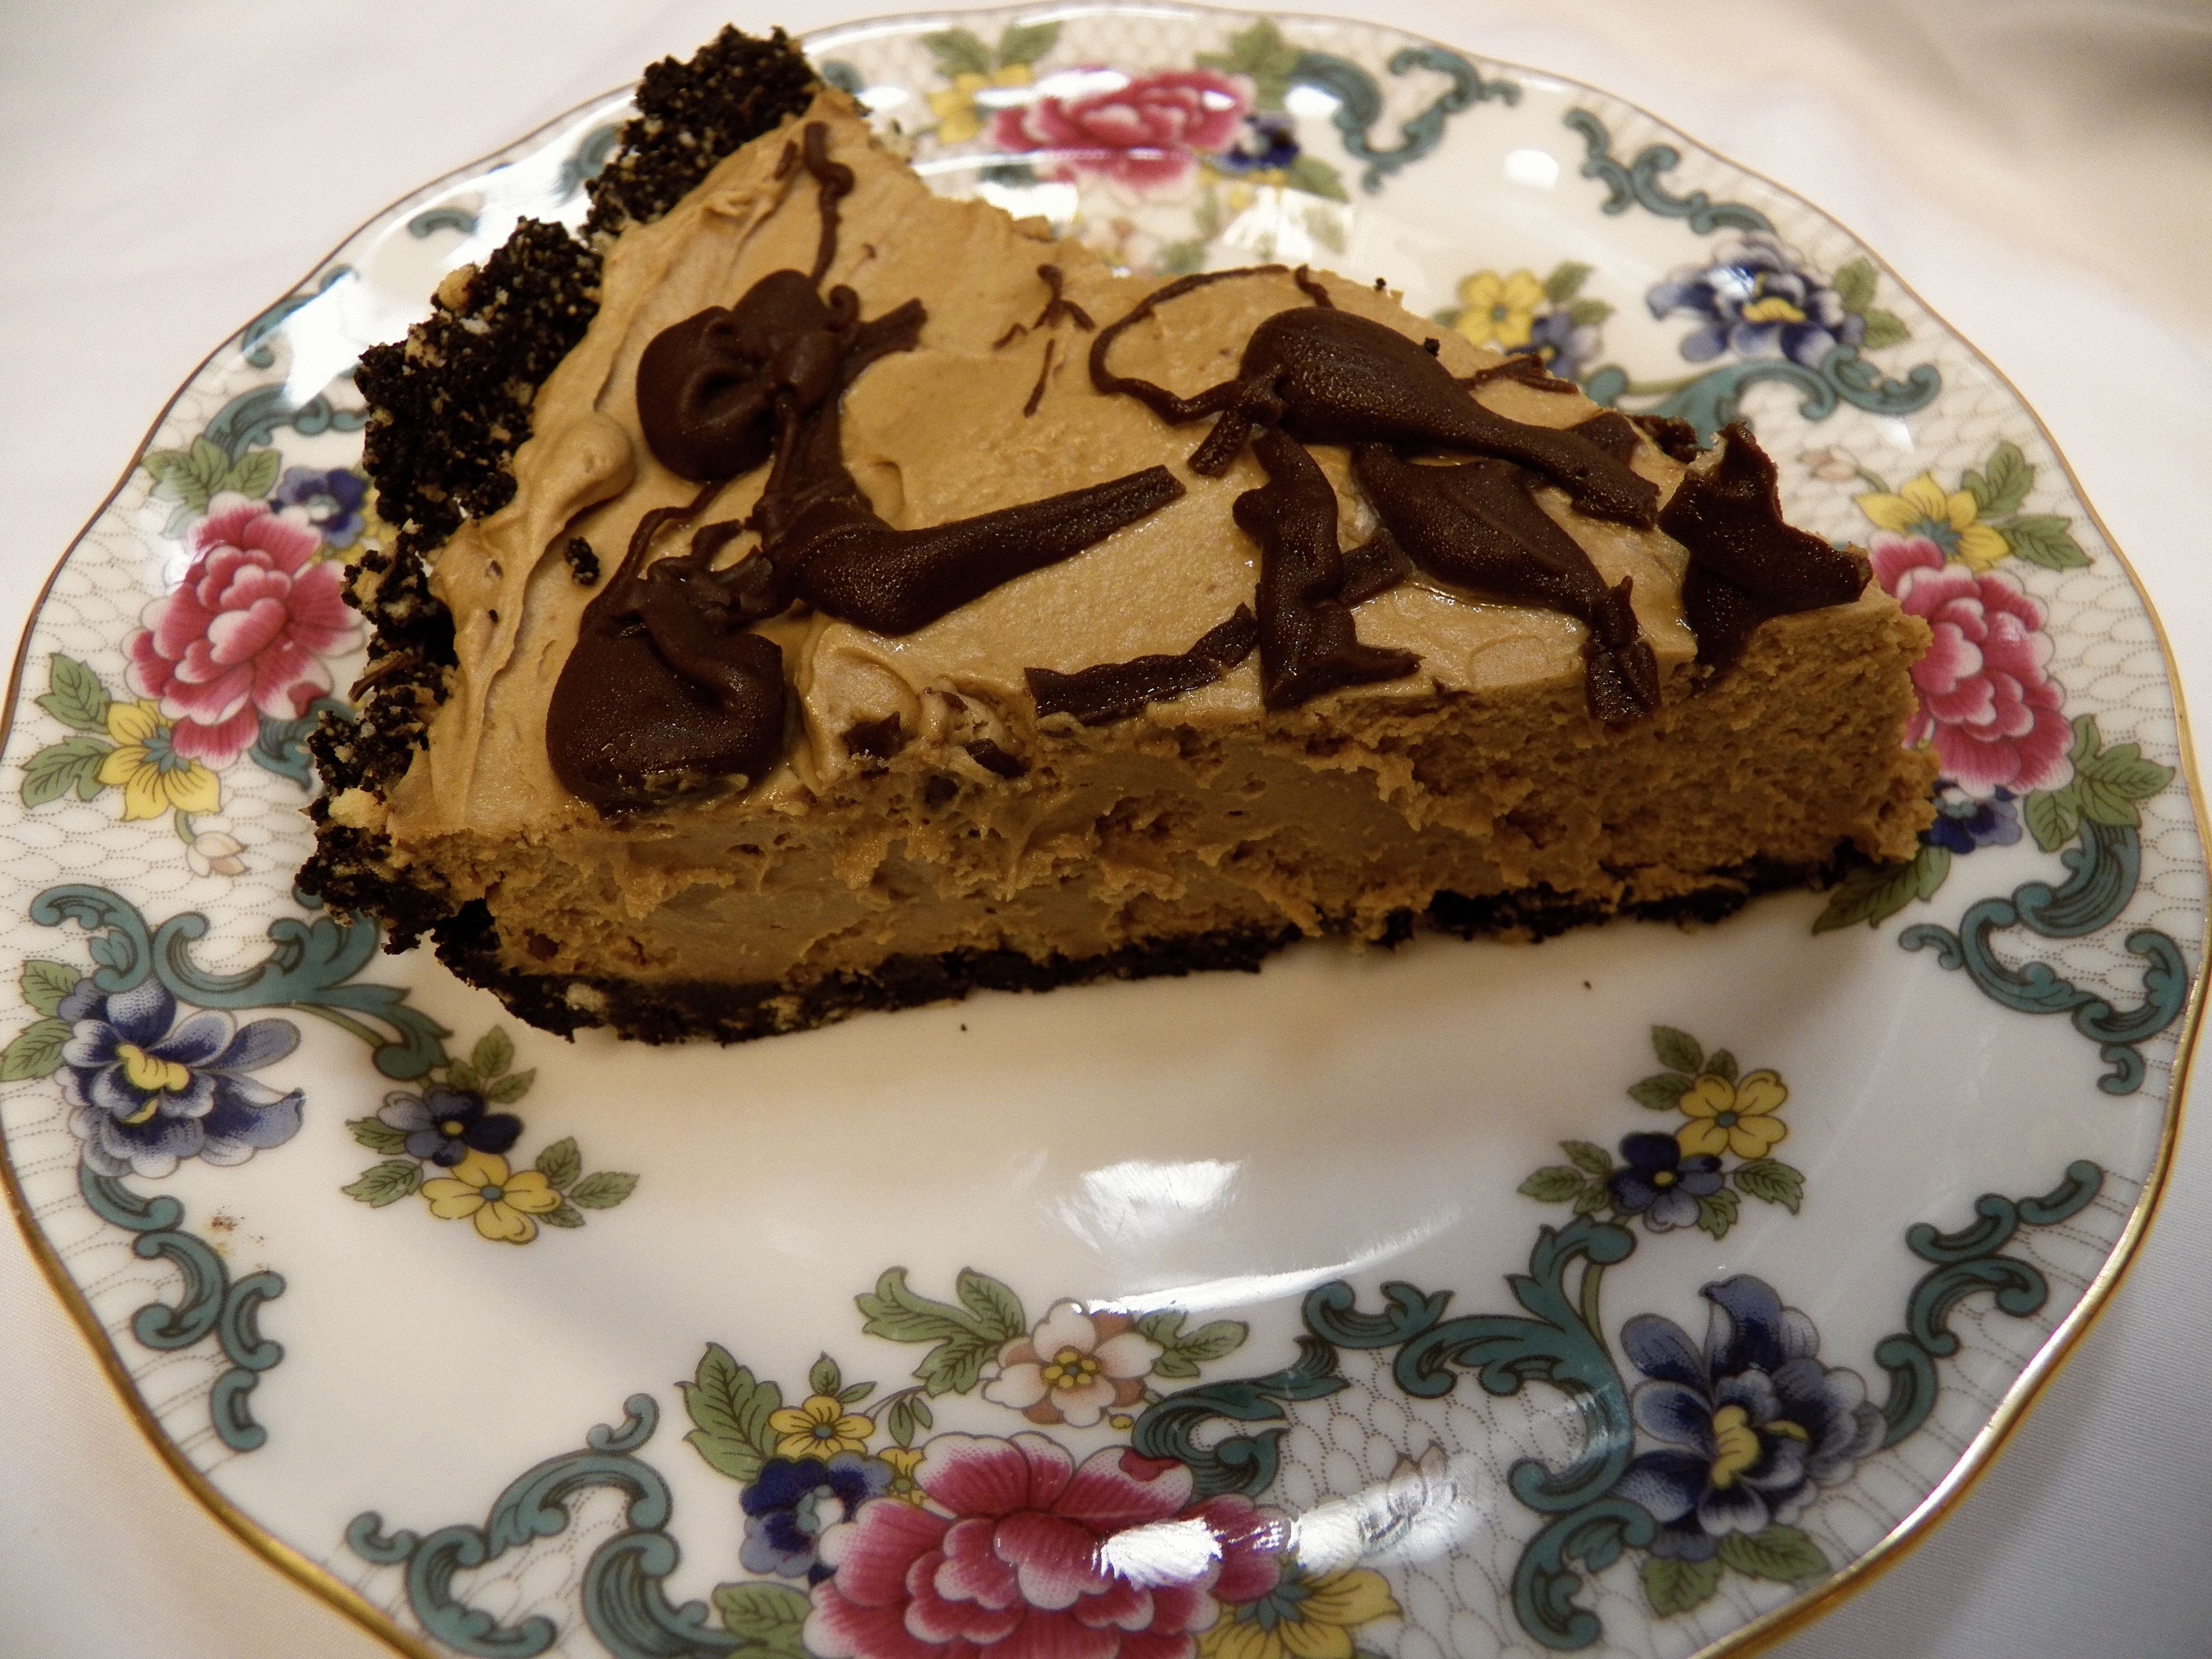 008 Review of JellO NoBake Peanut Butter Cup Dessert Mix